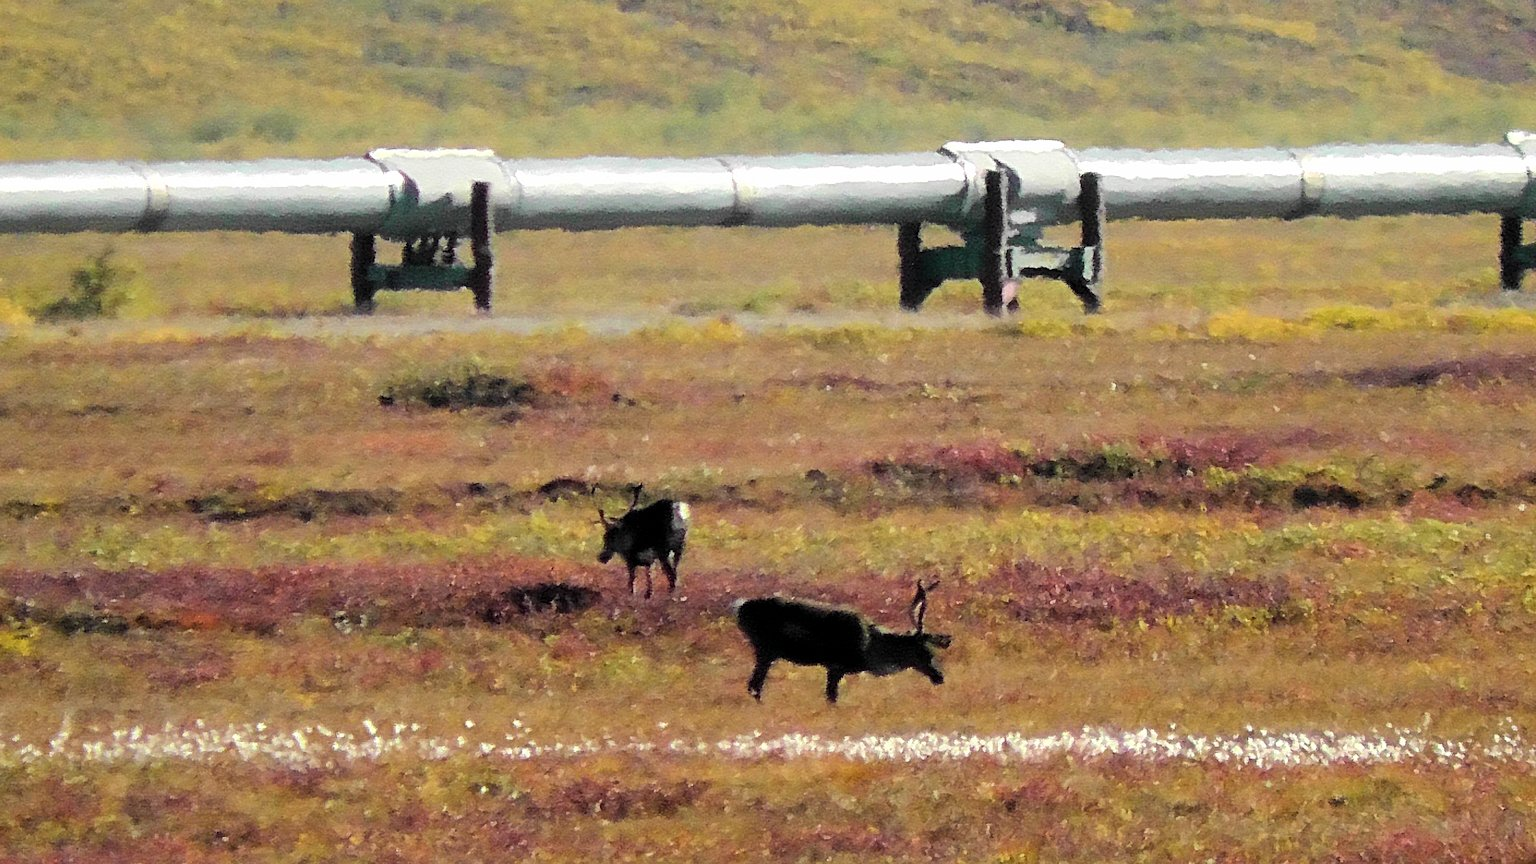 Caribou and the Alaska Pipeline